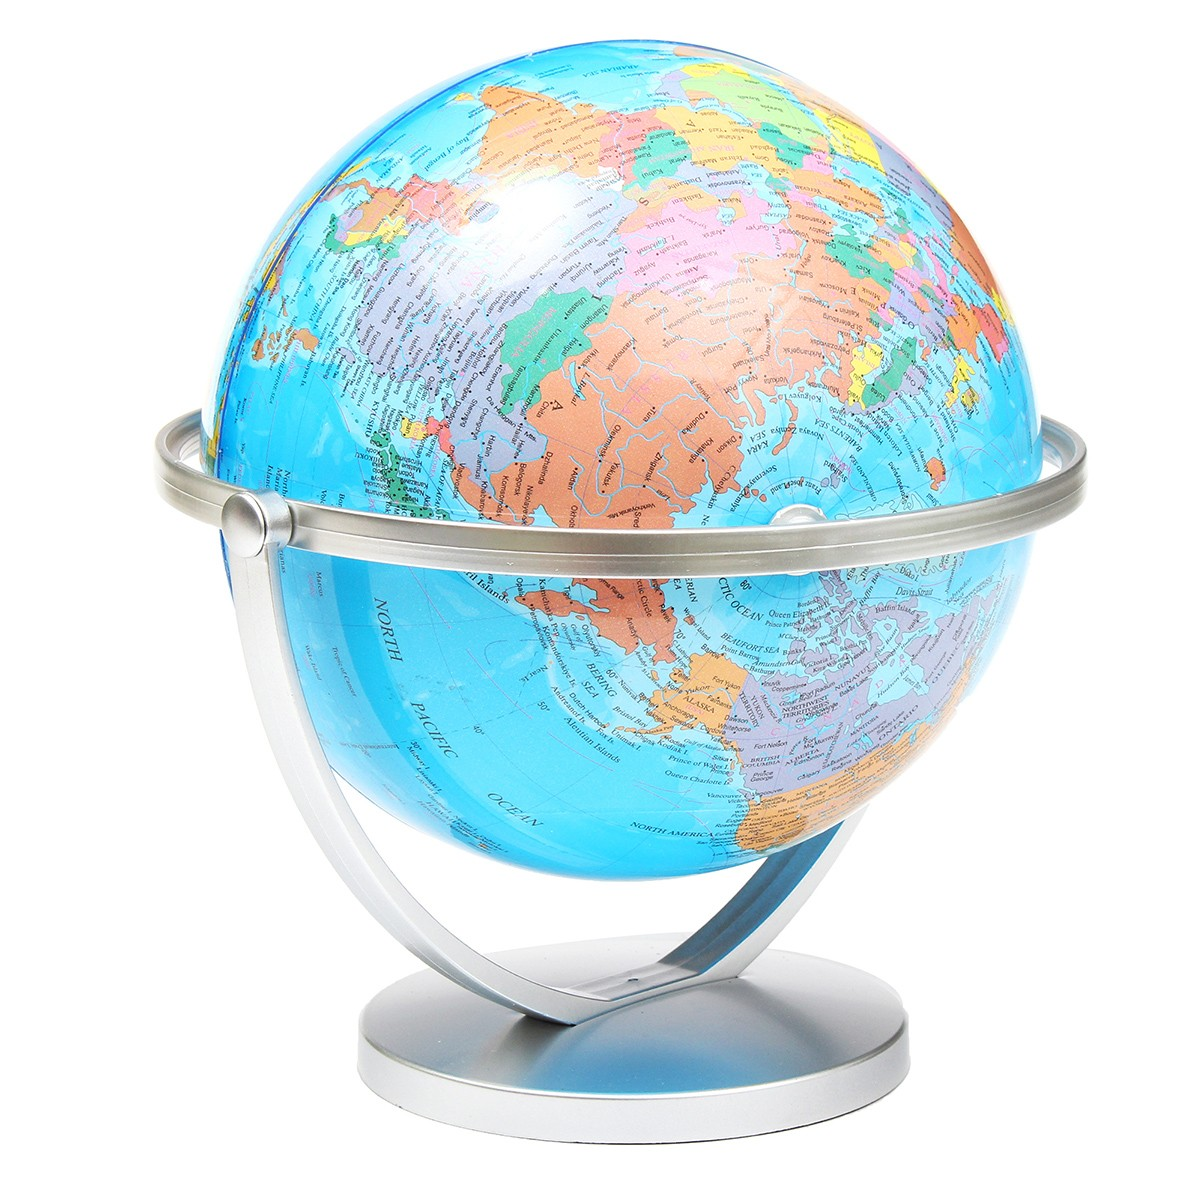 MIRUI 20cm 360 Degree Rotation World Globe Earth Map With Stand Children Geography Educational Toys Home Office English+Chinese